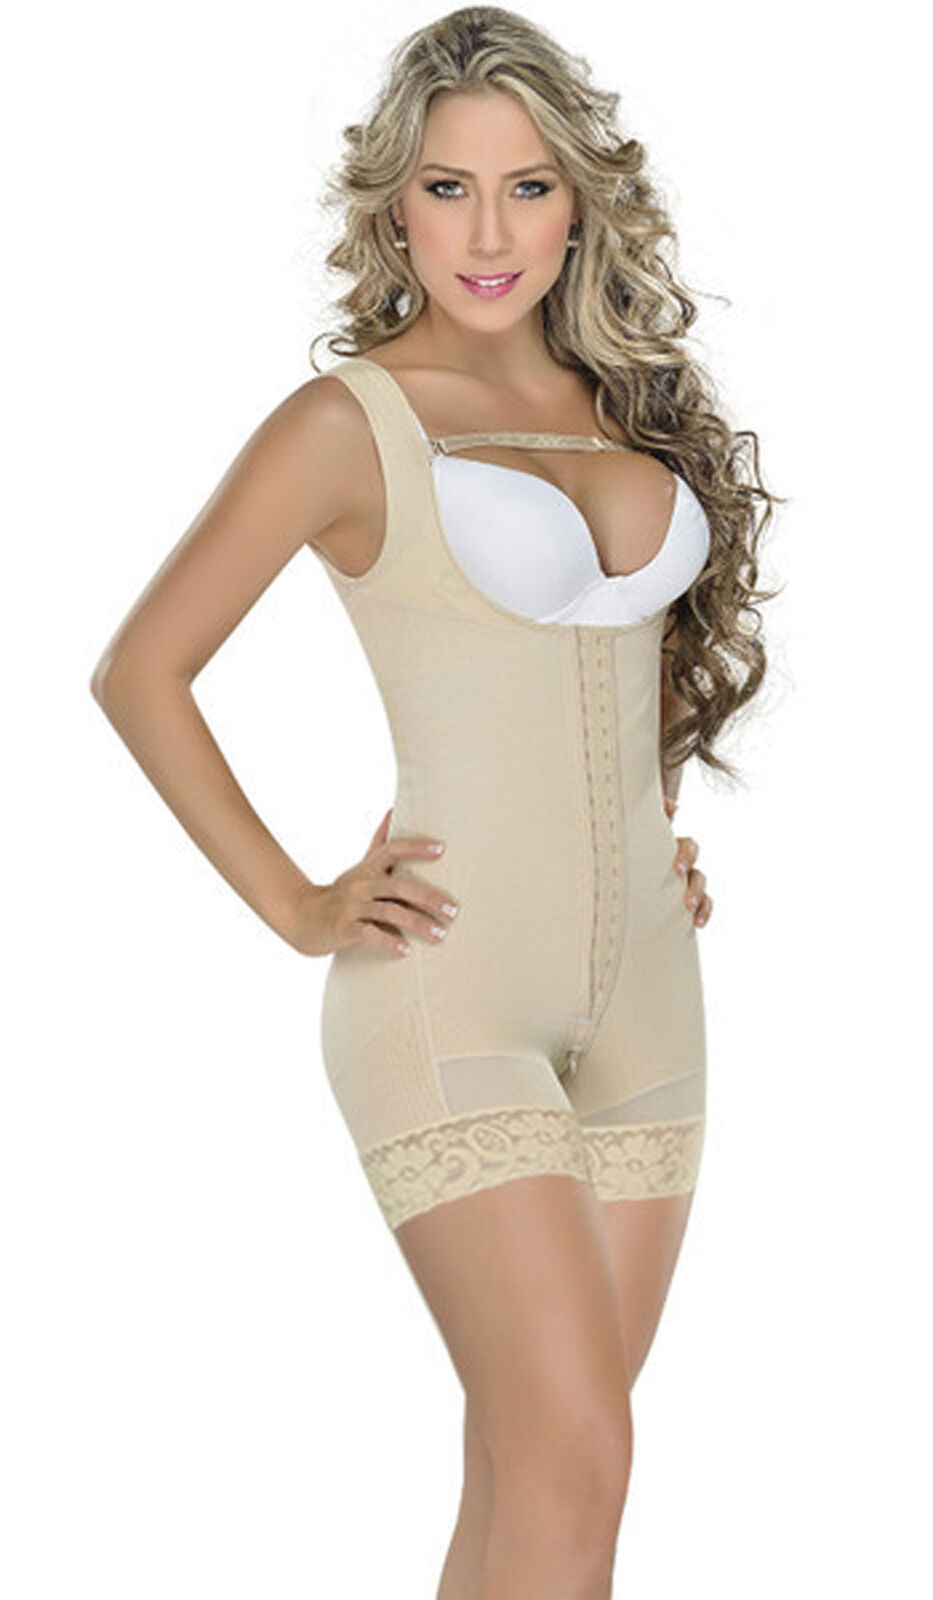 MyD F0065 Fajas Colombianas Post Surgical Body Shaper Short Style Butt Lifter